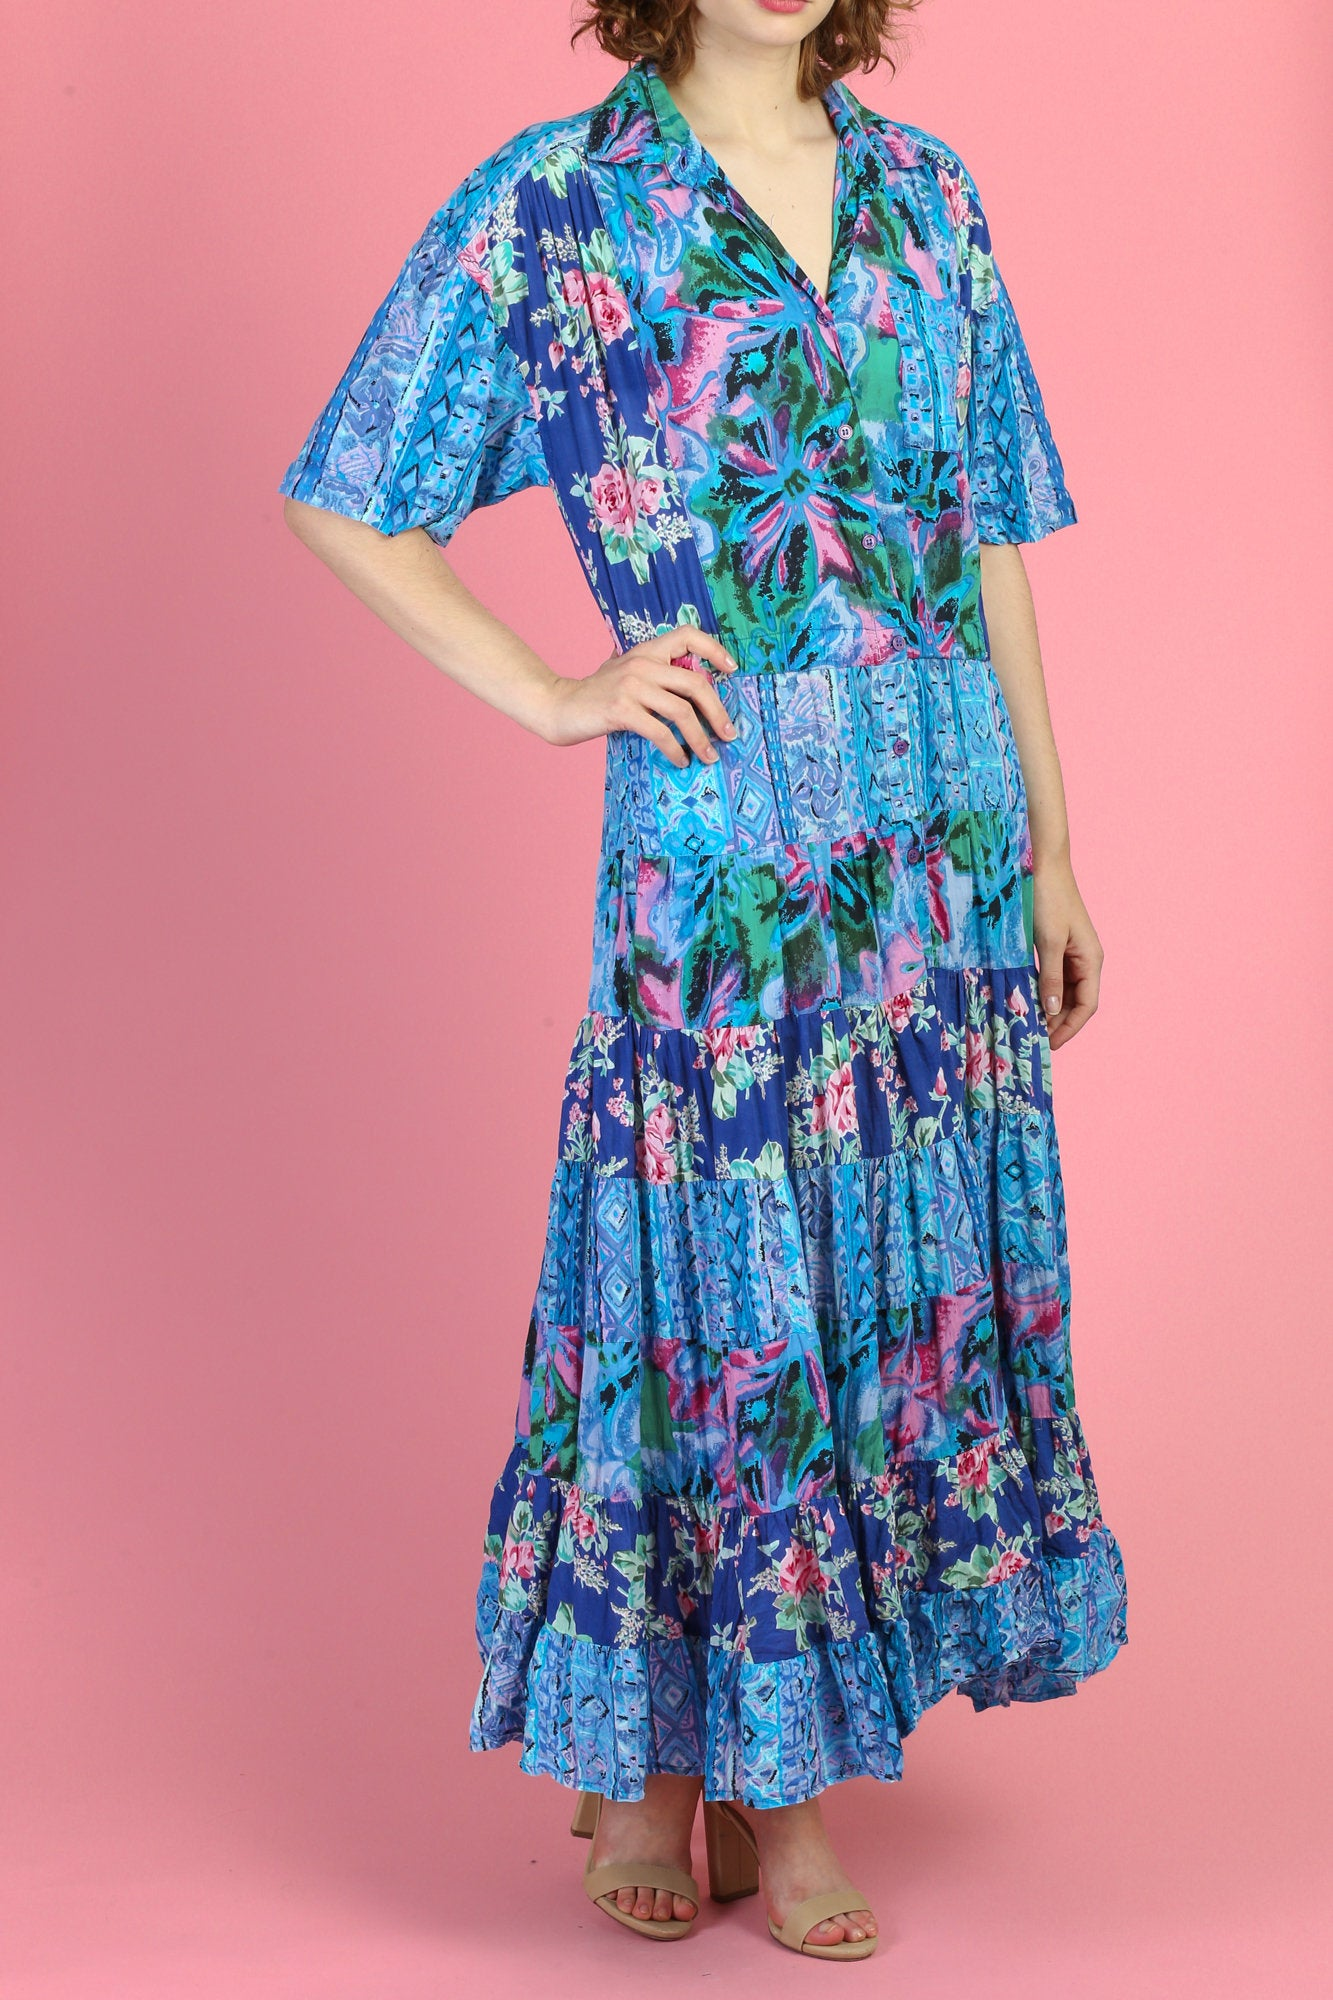 90s Floral Grunge Maxi Dress - Extra Large